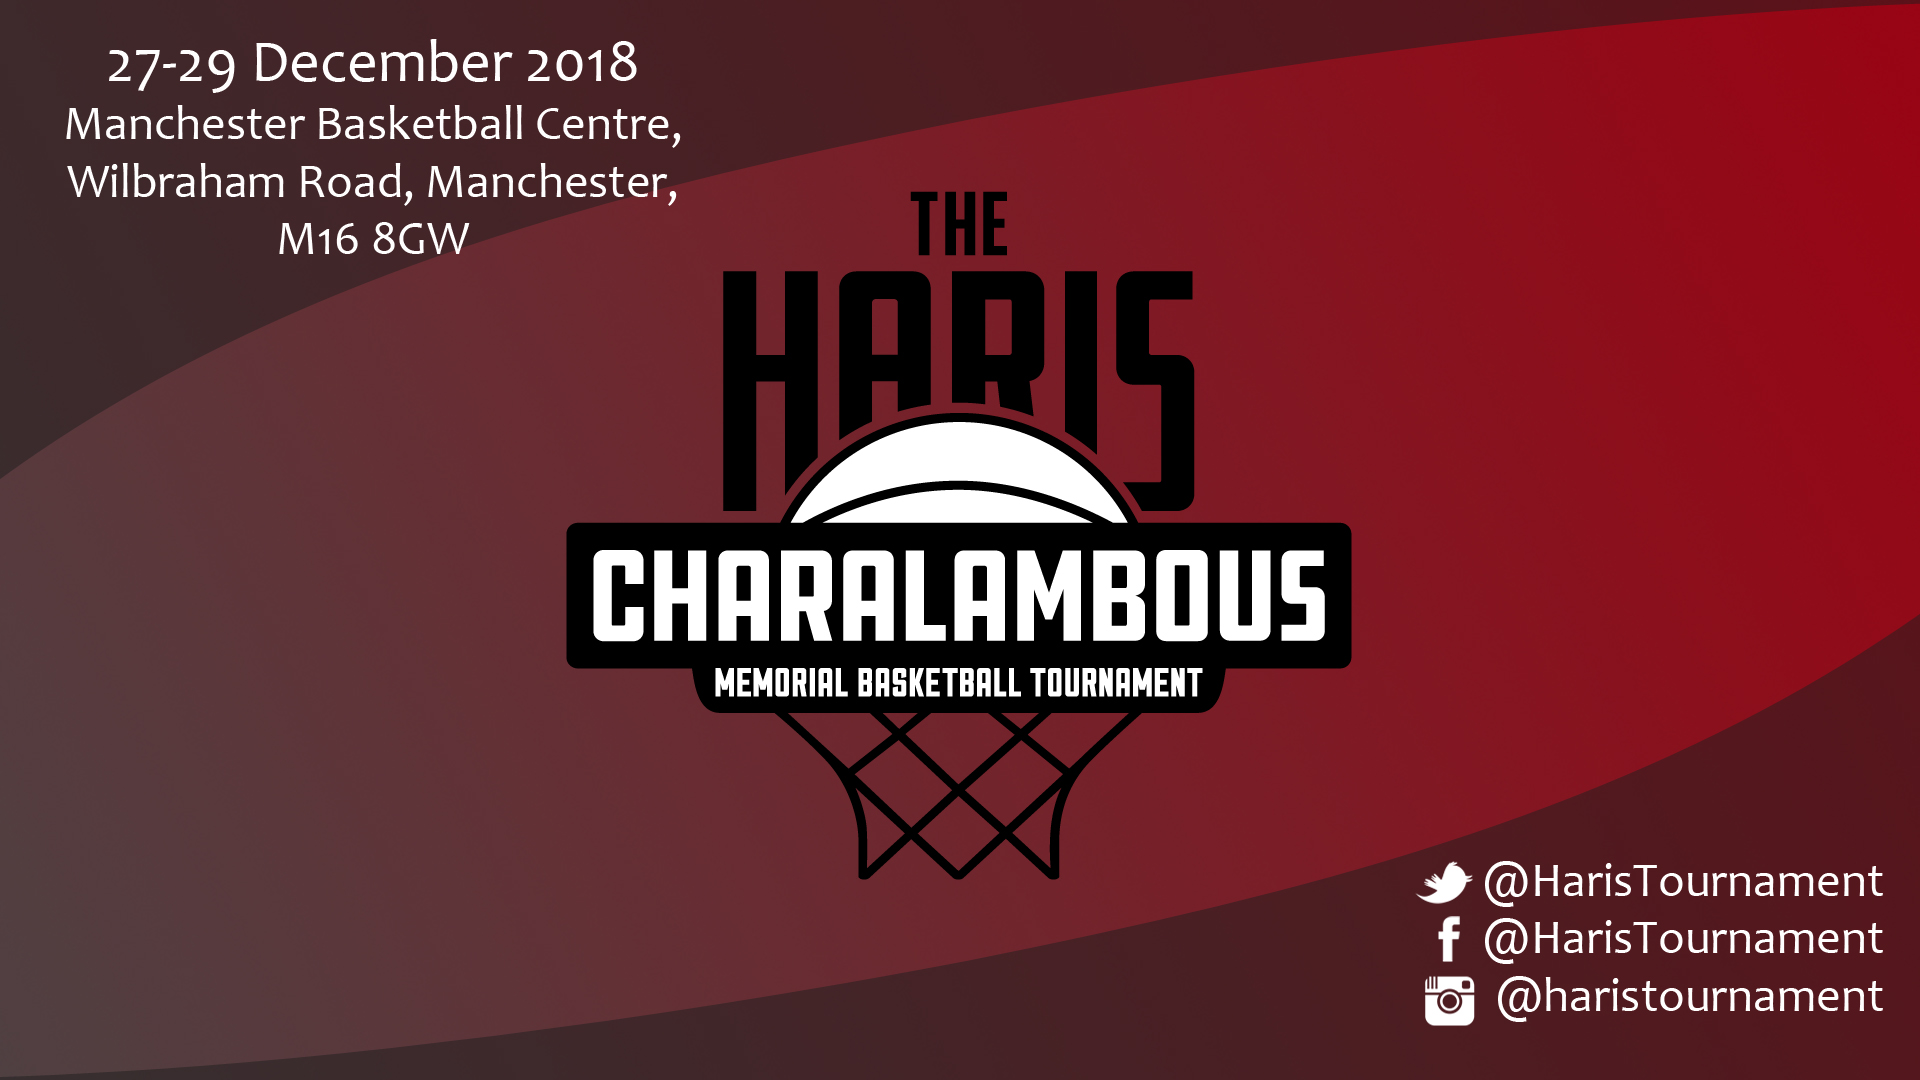 Haris Tournament 2018 27th-29th December 2018 at the Manchester Basketball Centre, Wilbraham Road, Manchester, M16 8GW